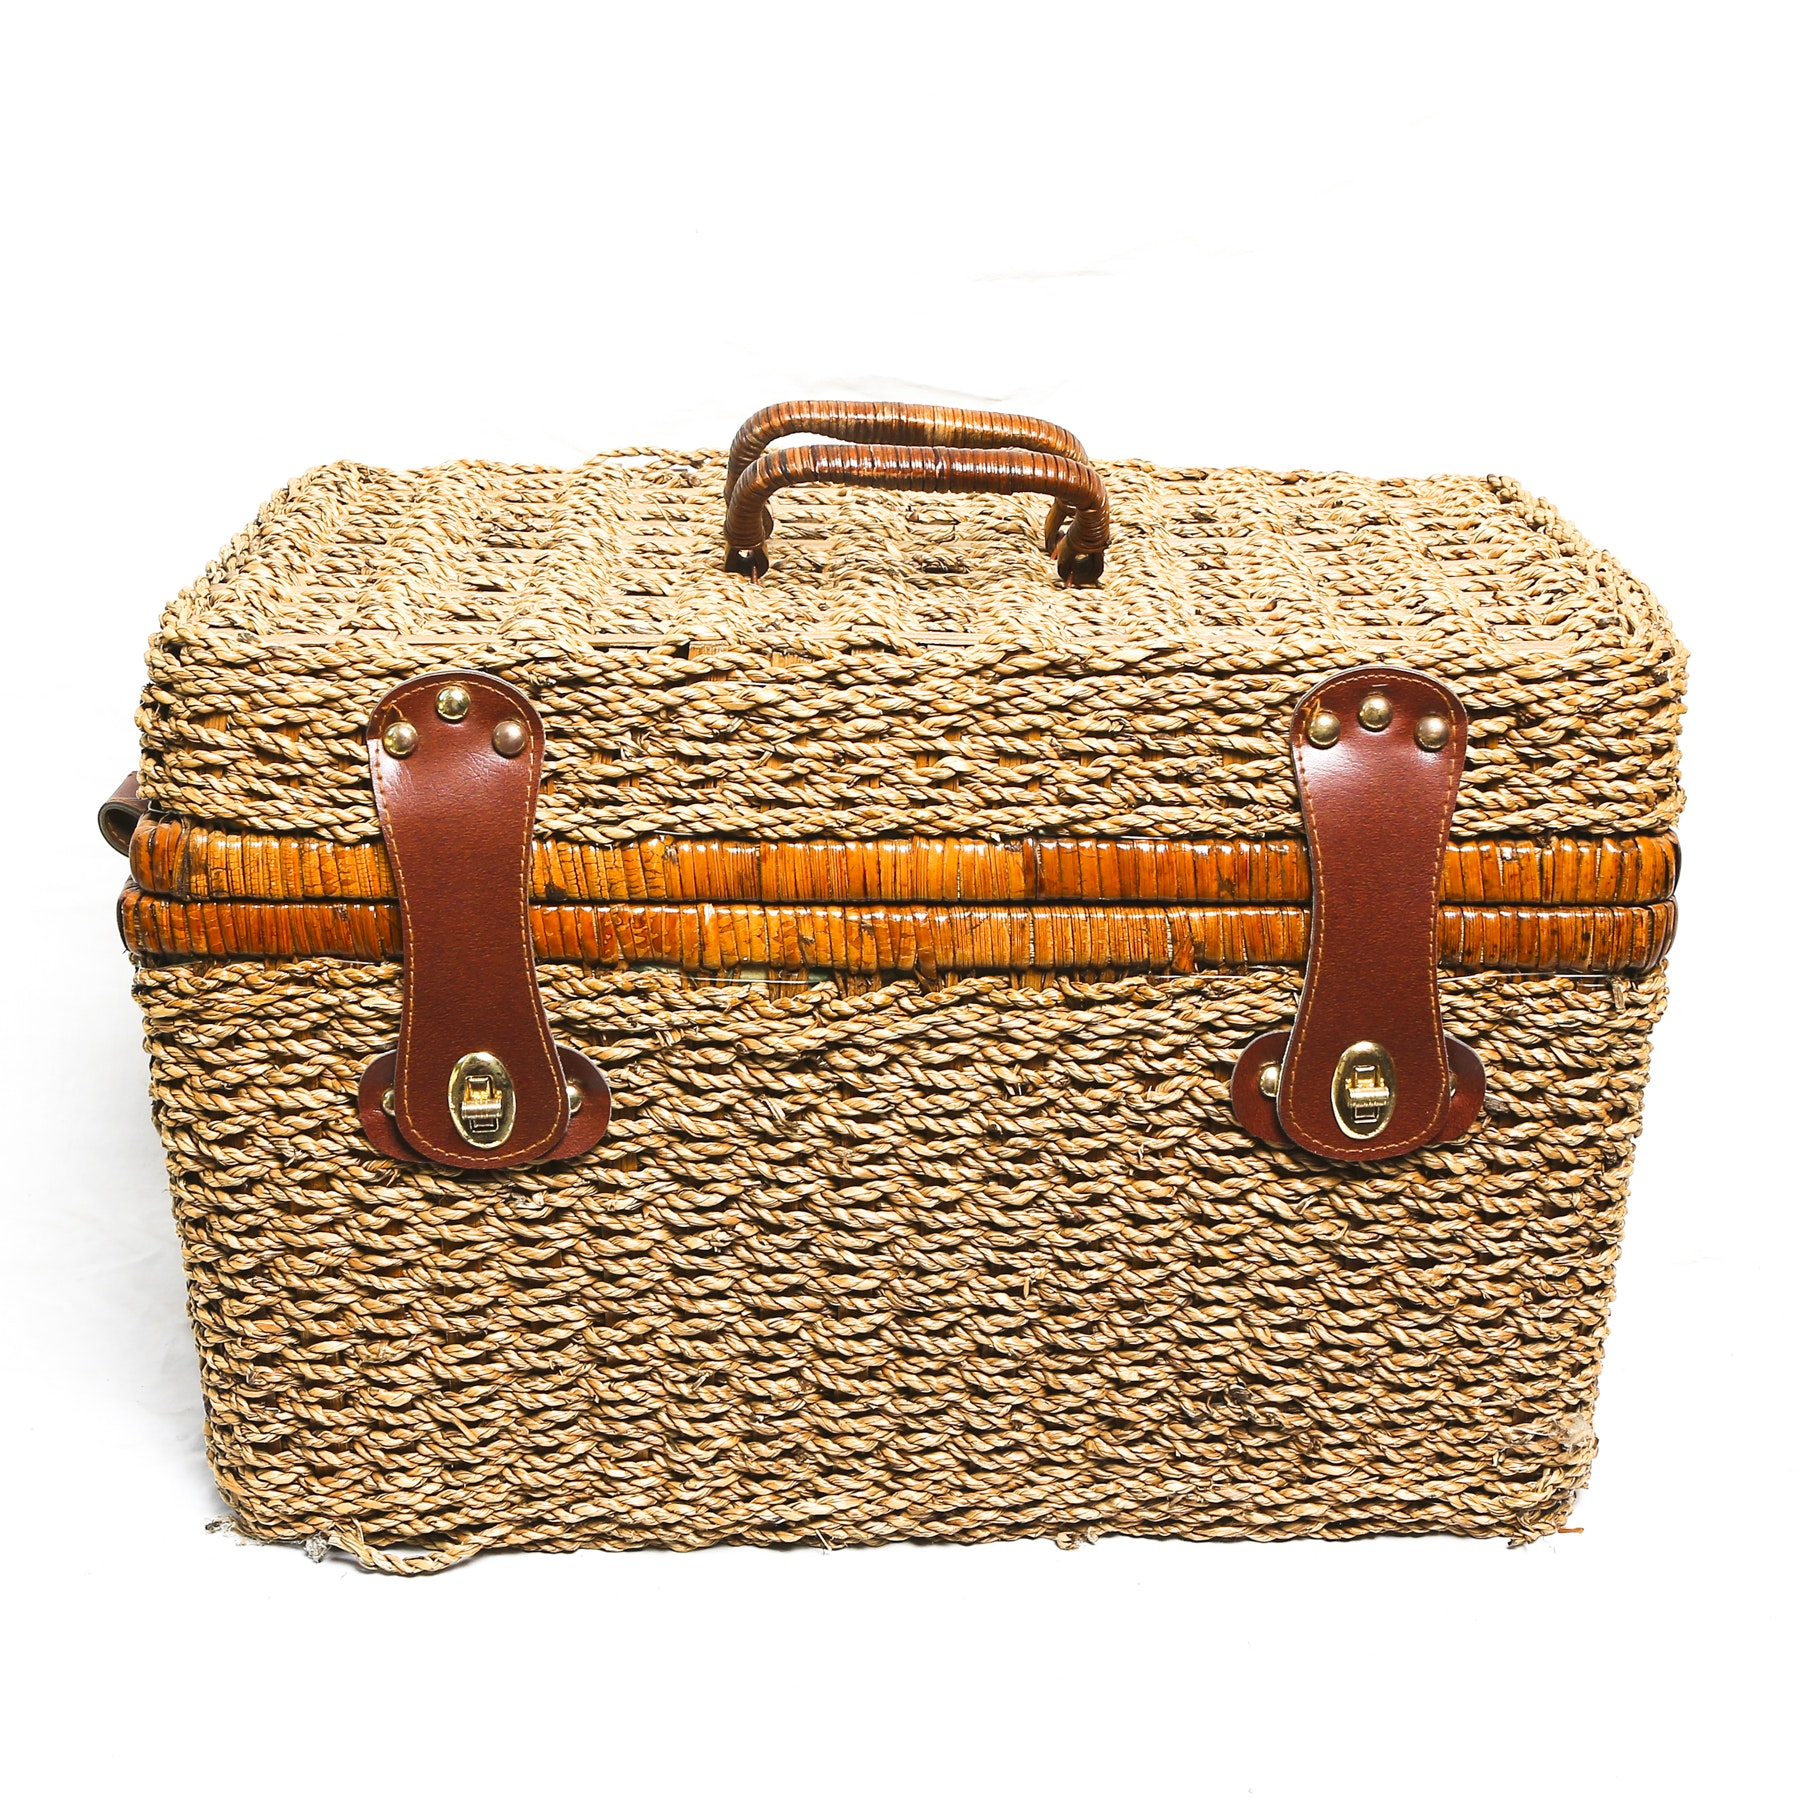 Wicker Picnic Basket Set for Four